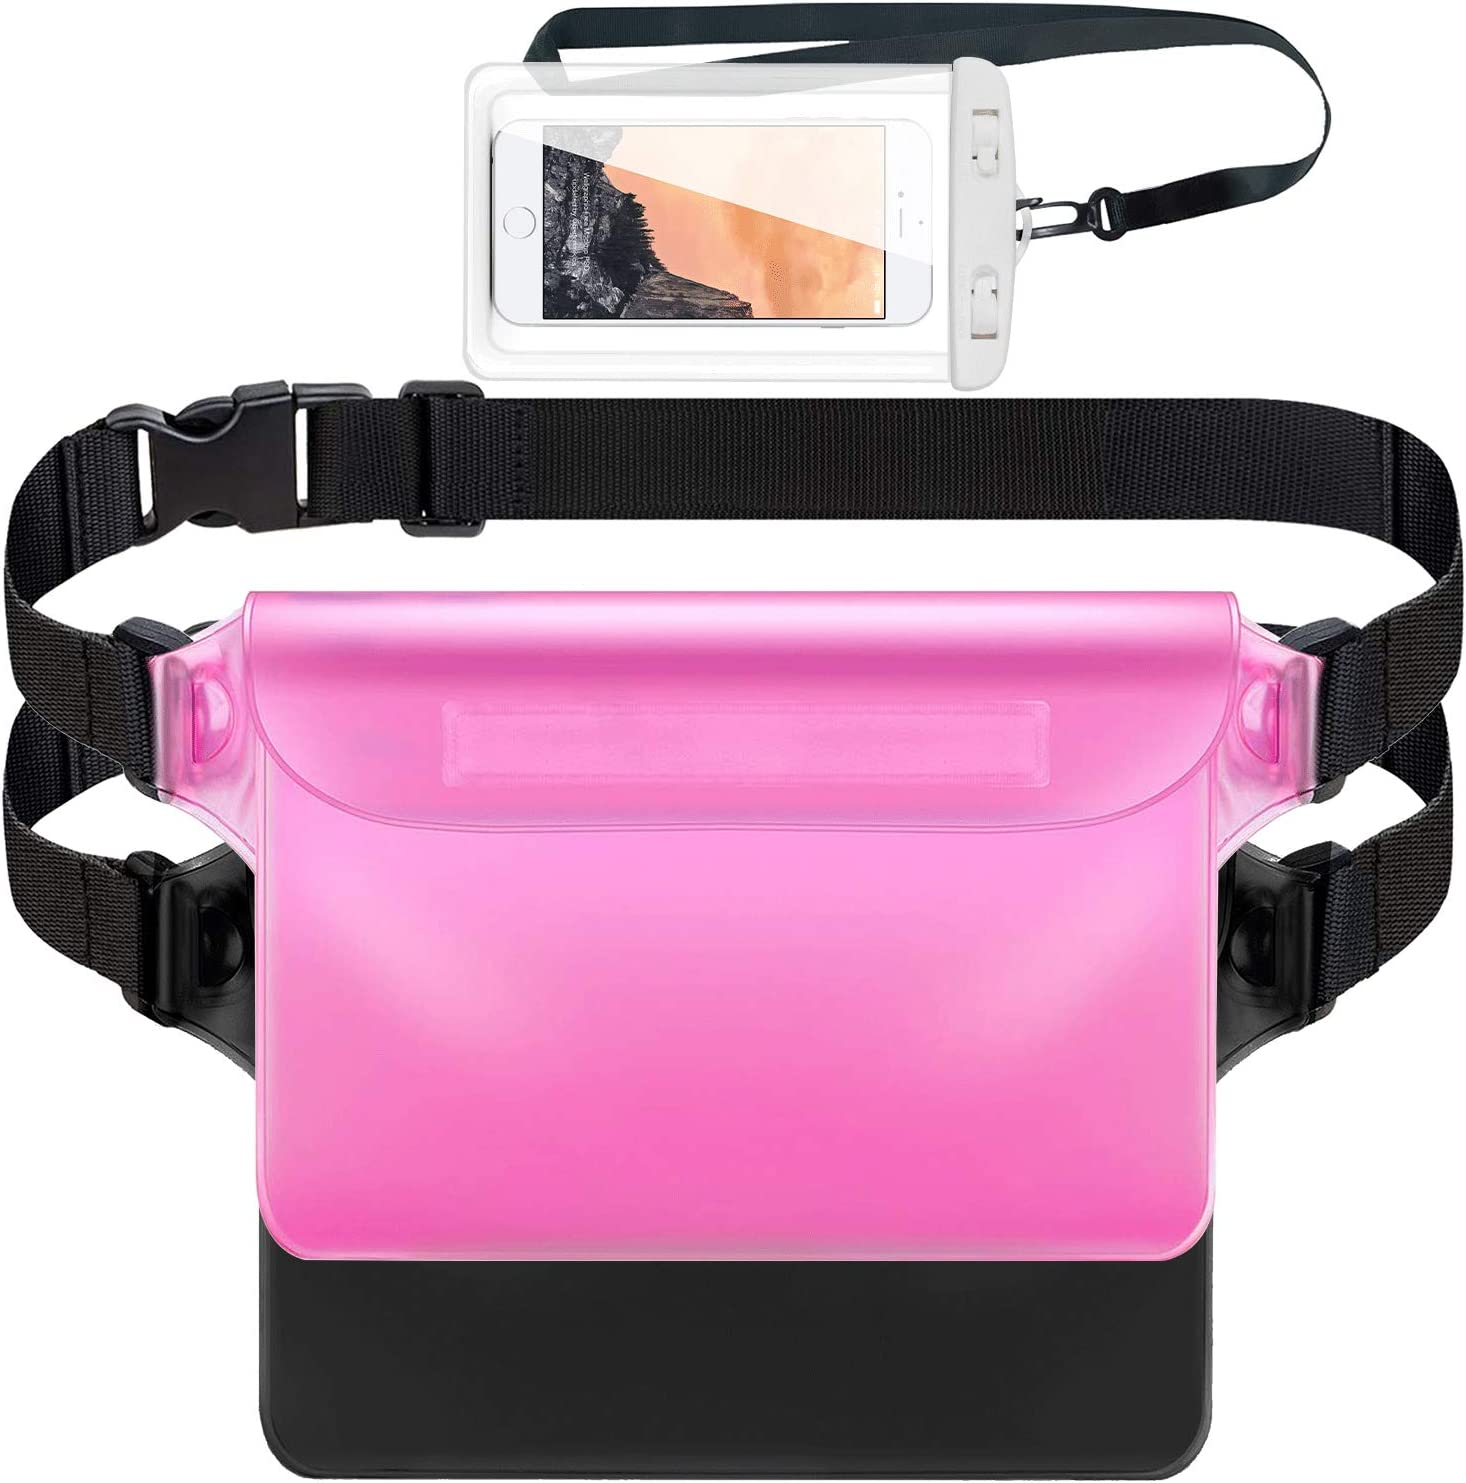 Zoiber Waterproof Some reservation Pouch with Adjustable Pack Strap -Wat Waist 3 Cheap super special price